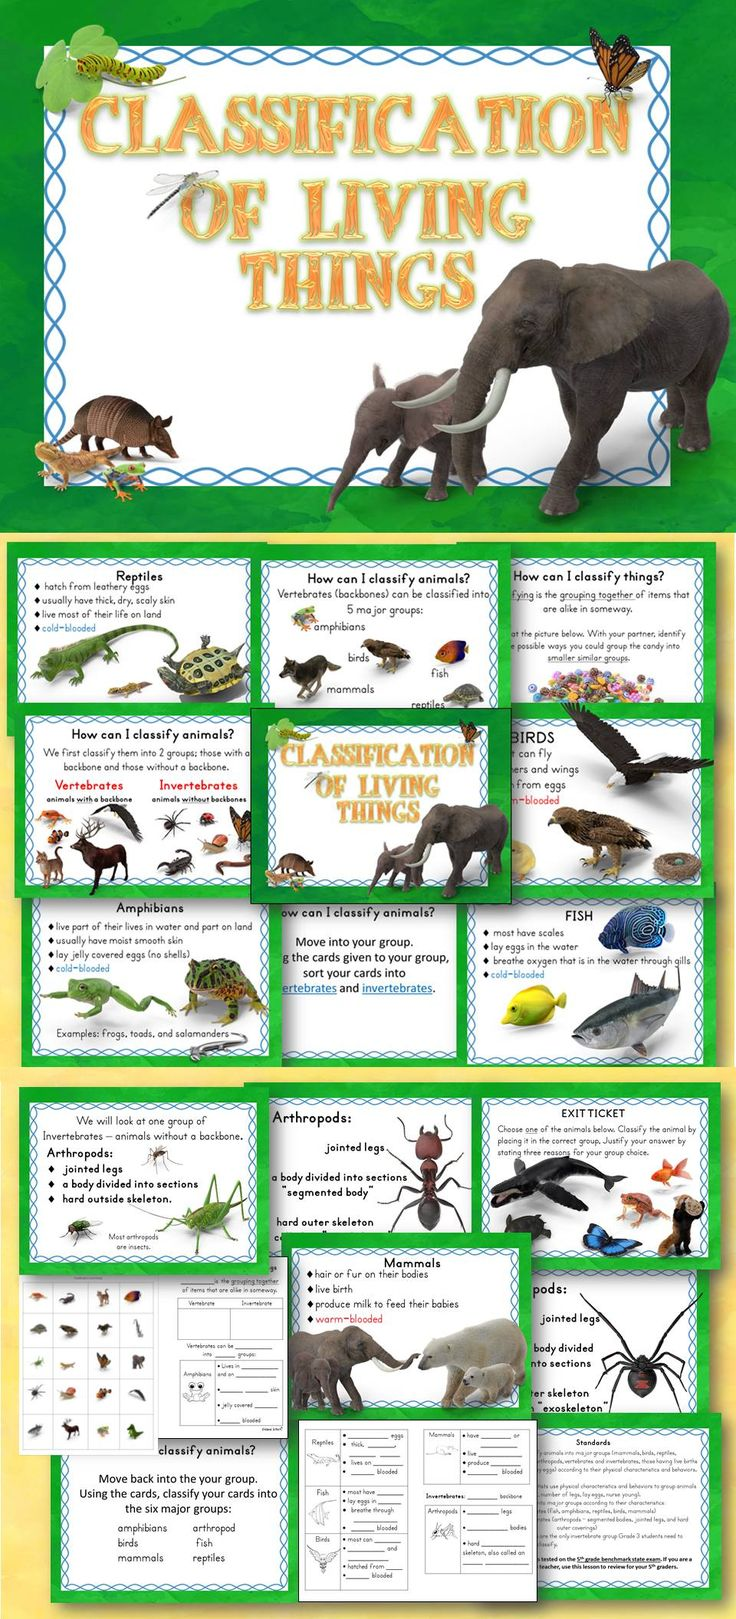 Animal Classification of Living Things PowerPoint and